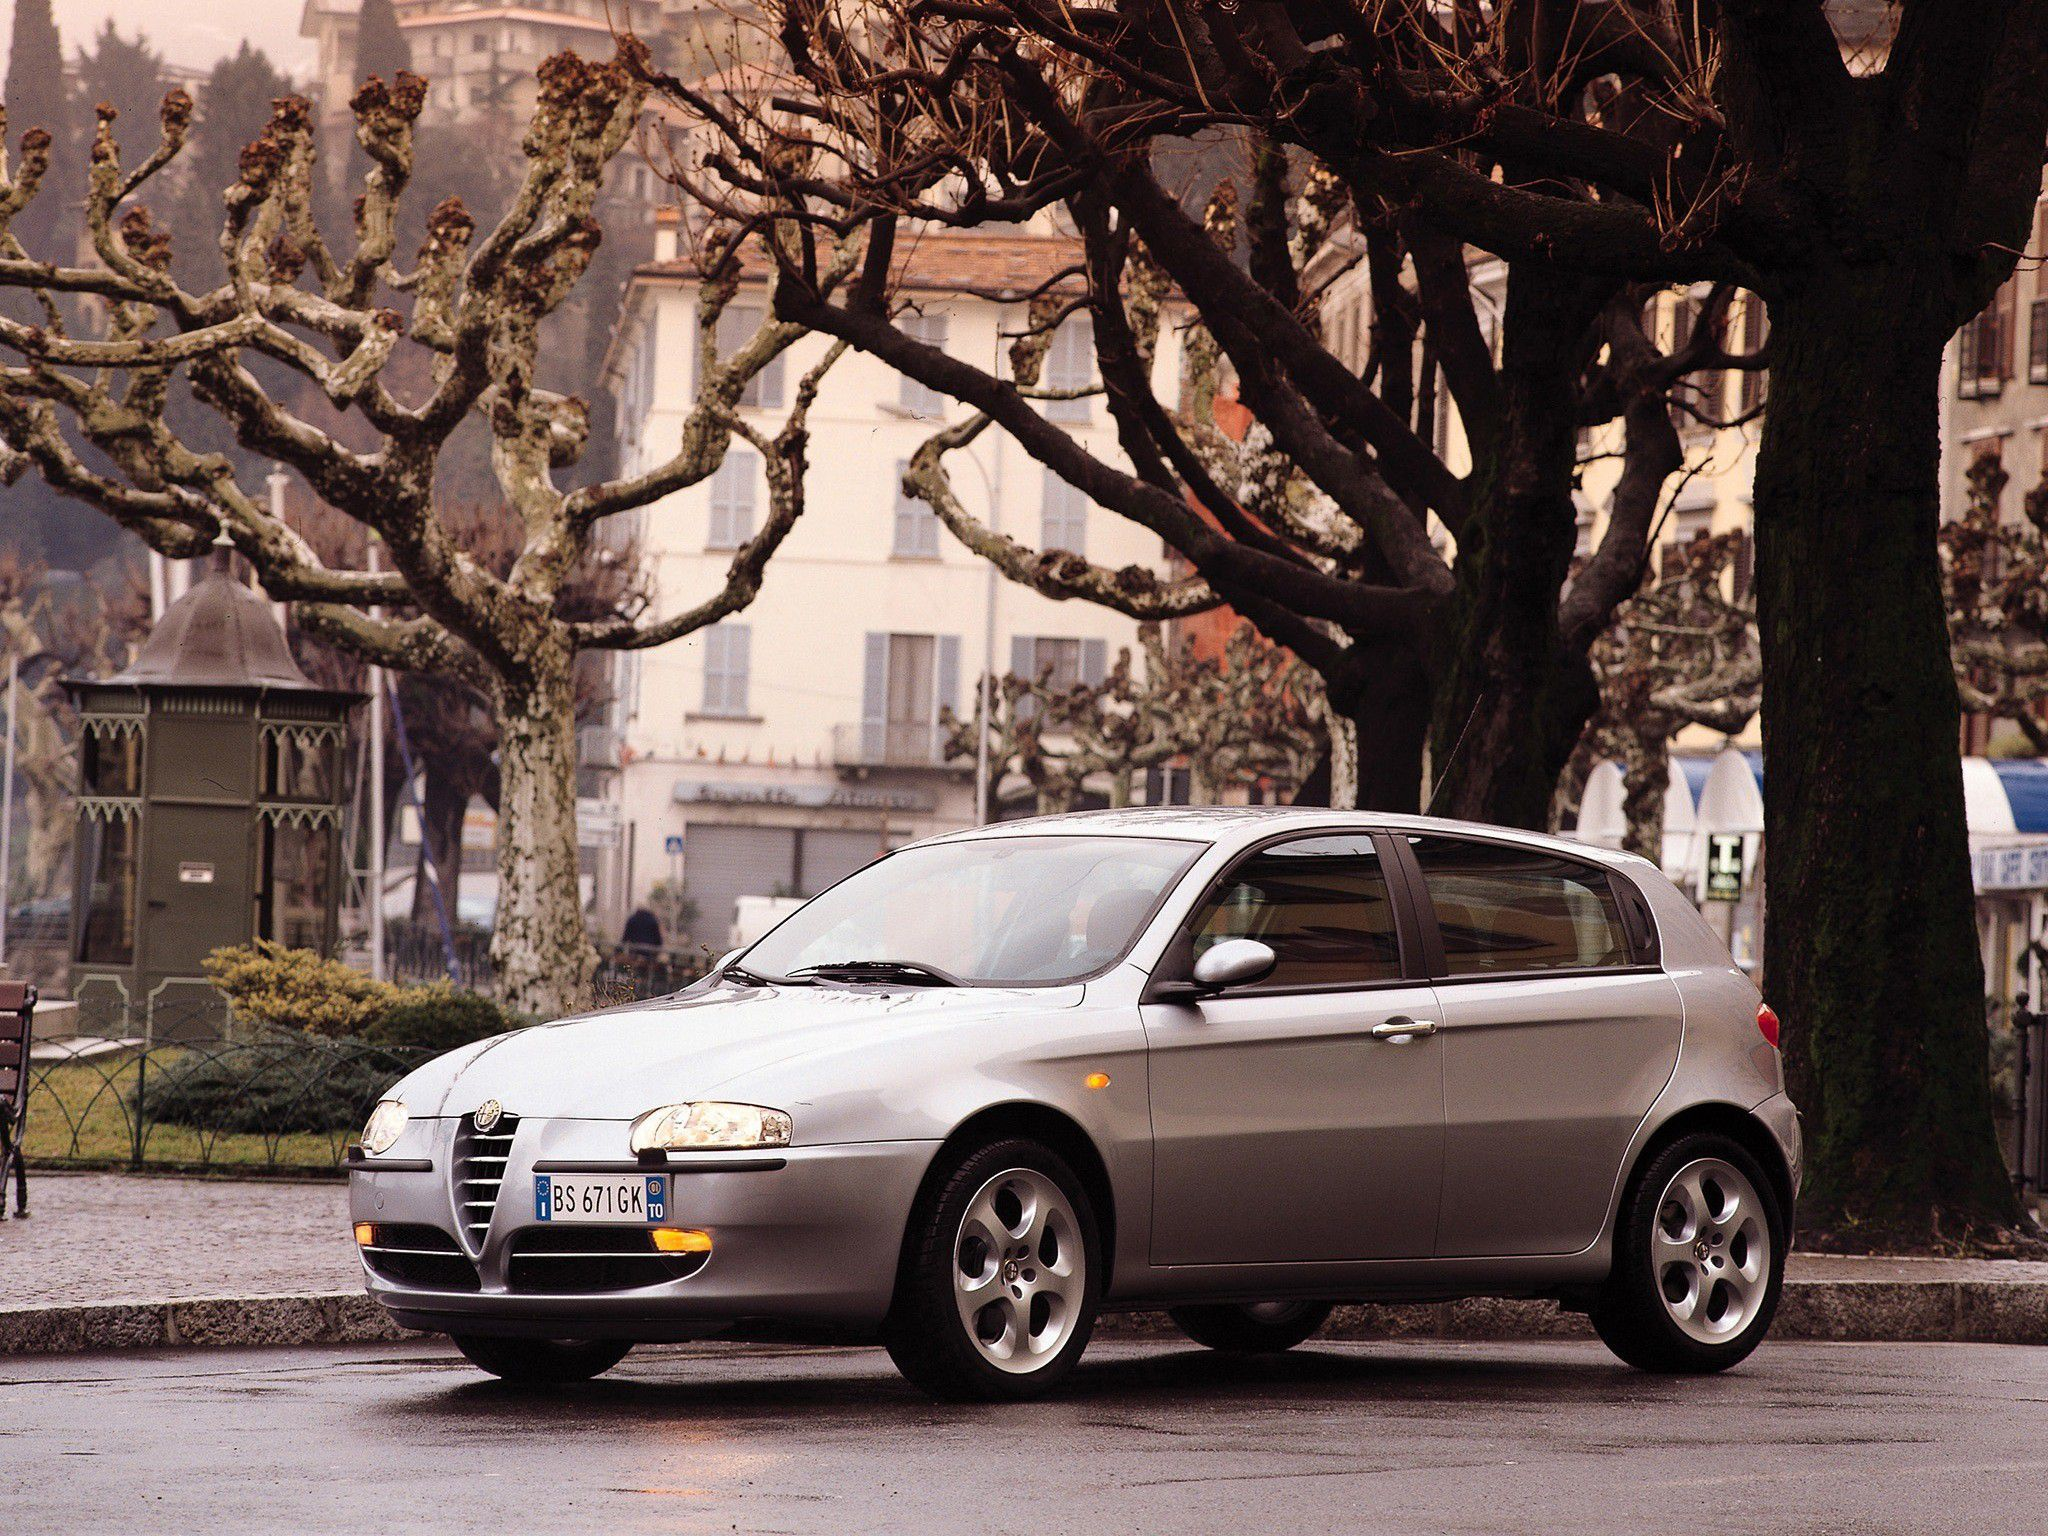 Alfa Romeo 147 Wallpaper Pack